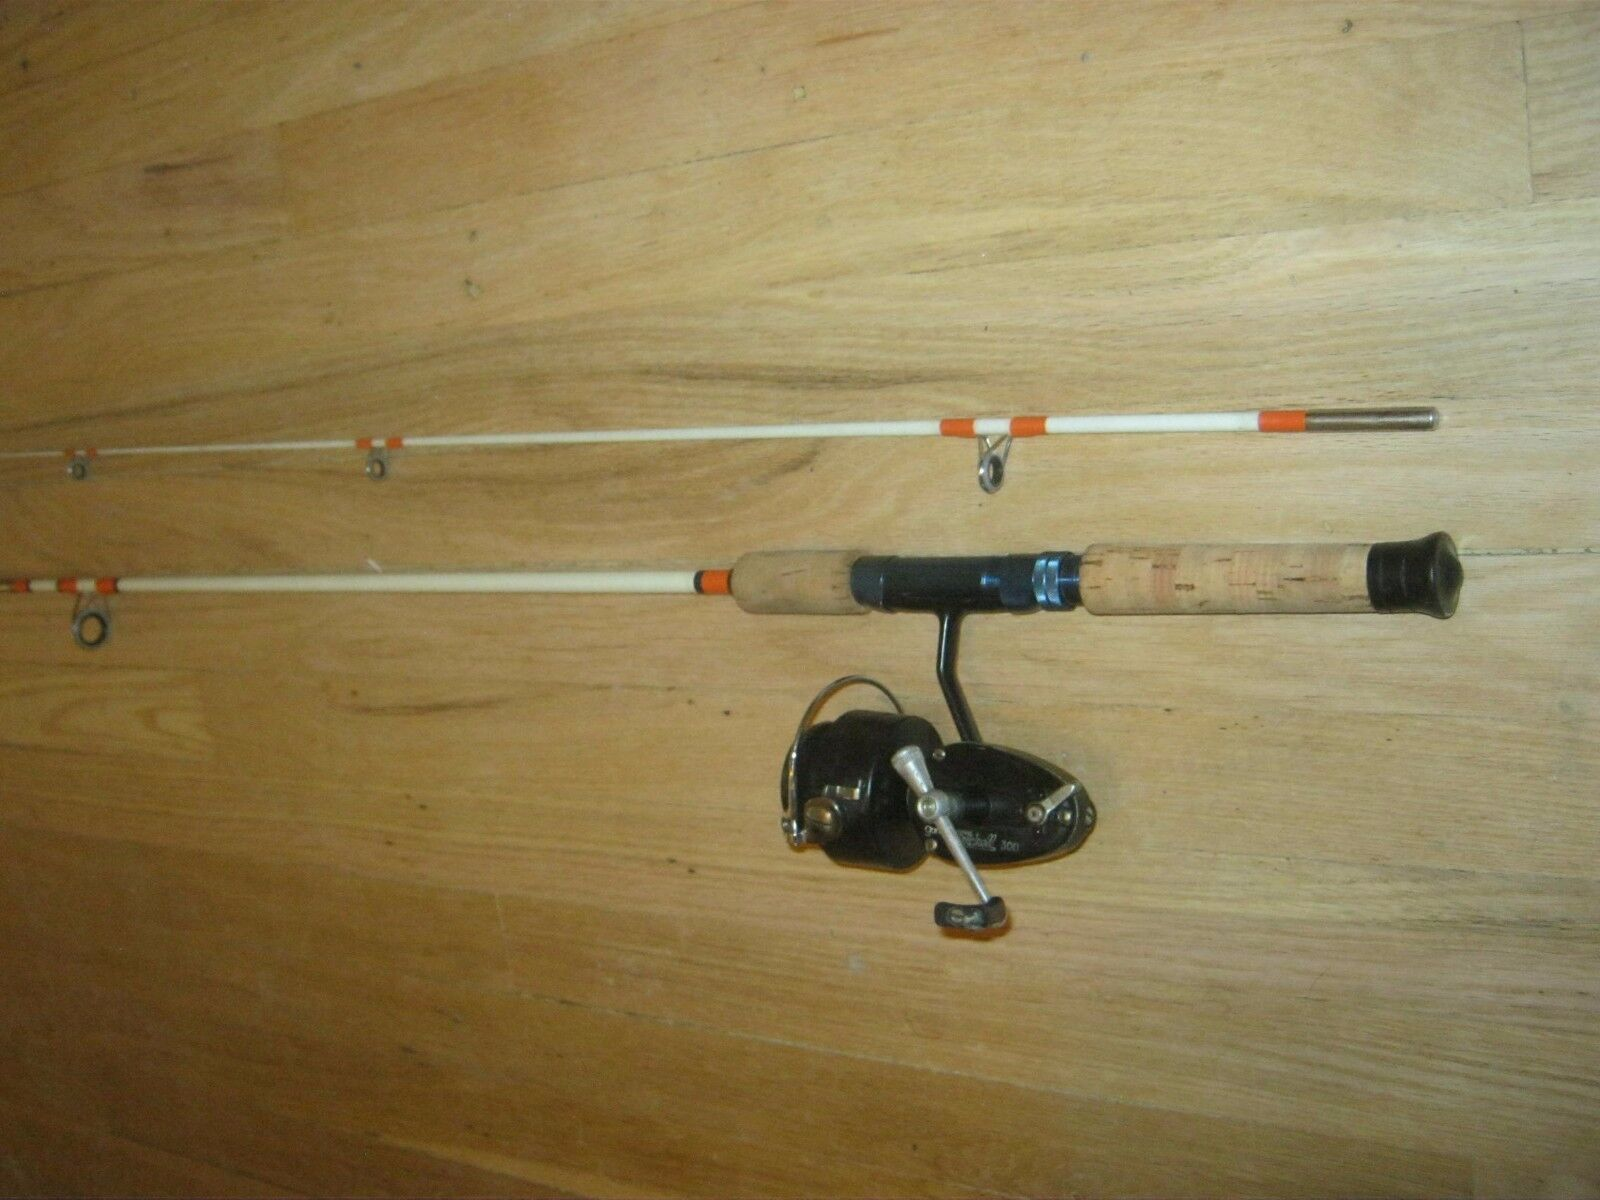 2pc. 6.5 ft spinning rod + Garcia Mitchell 300  reel  order now with big discount & free delivery